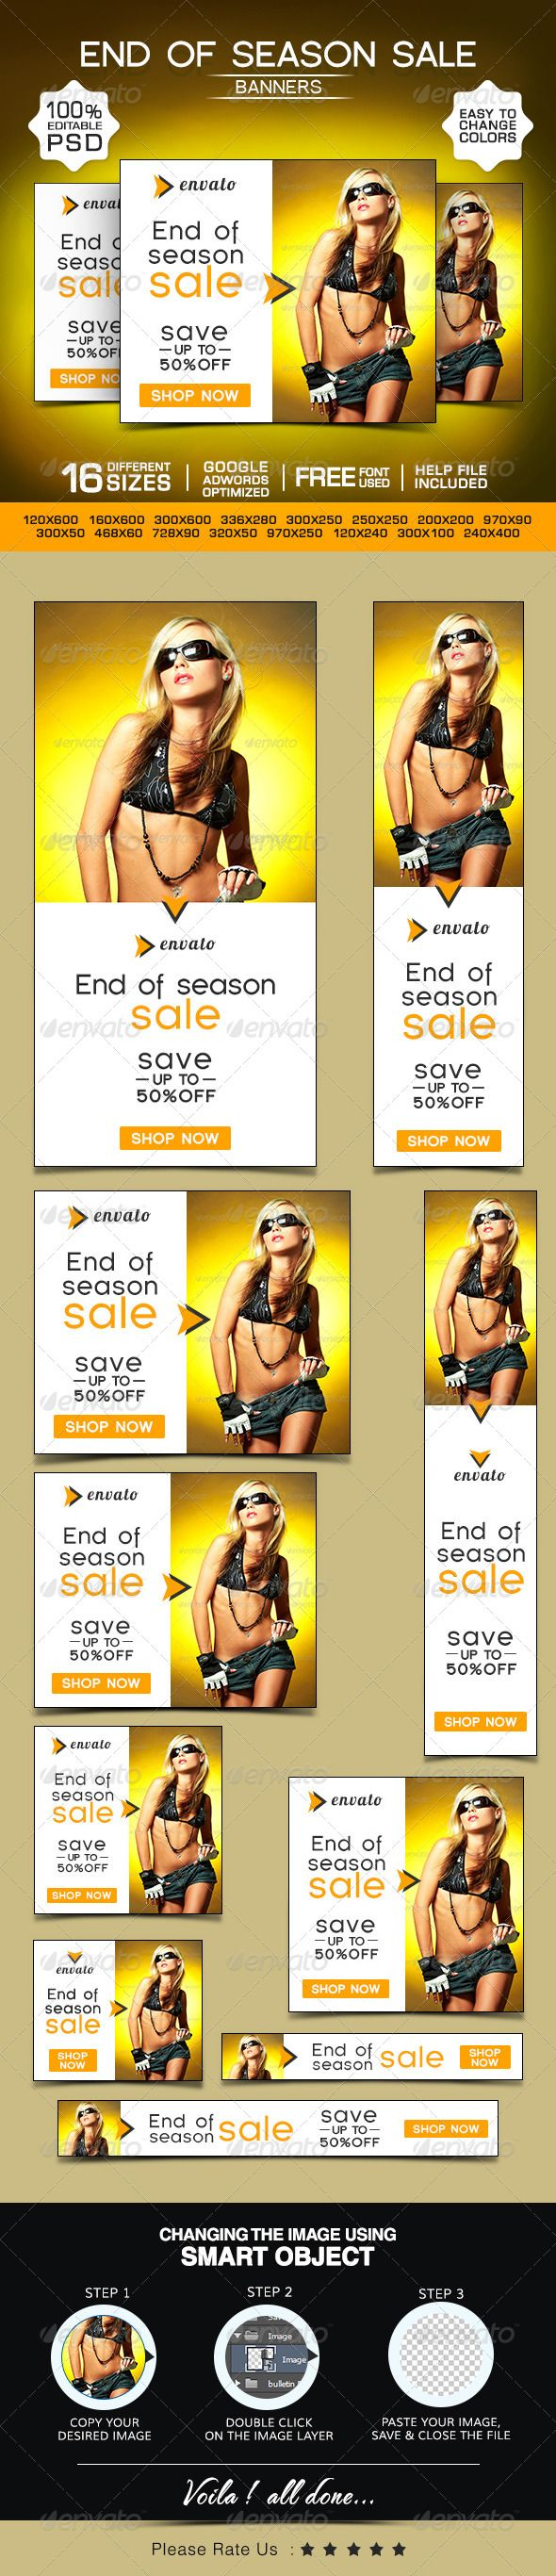 End of Season Sale Banners - Banners & Ads Web Template PSD. Download here: http://graphicriver.net/item/end-of-season-sale-banners/8565692?s_rank=1352&ref=yinkira